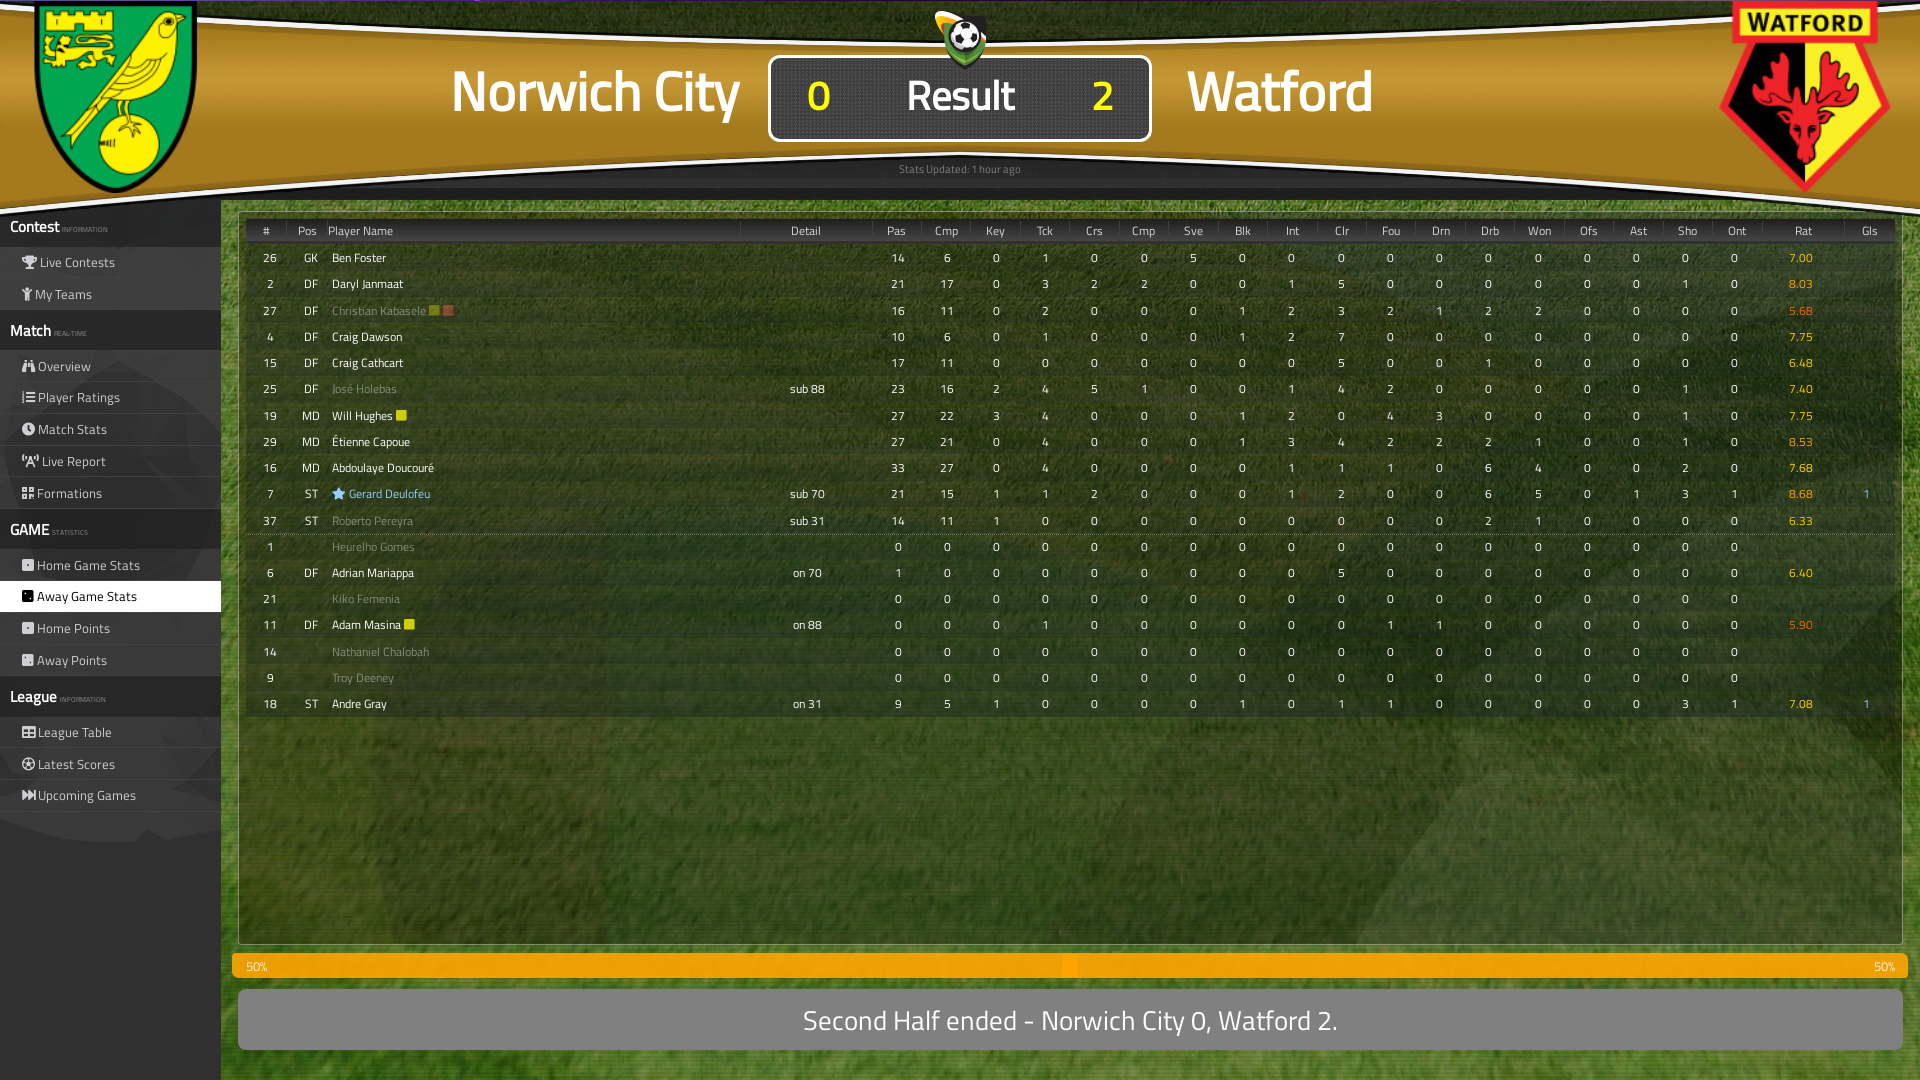 Norwich City vs Watford (0-2) 9th November 2019